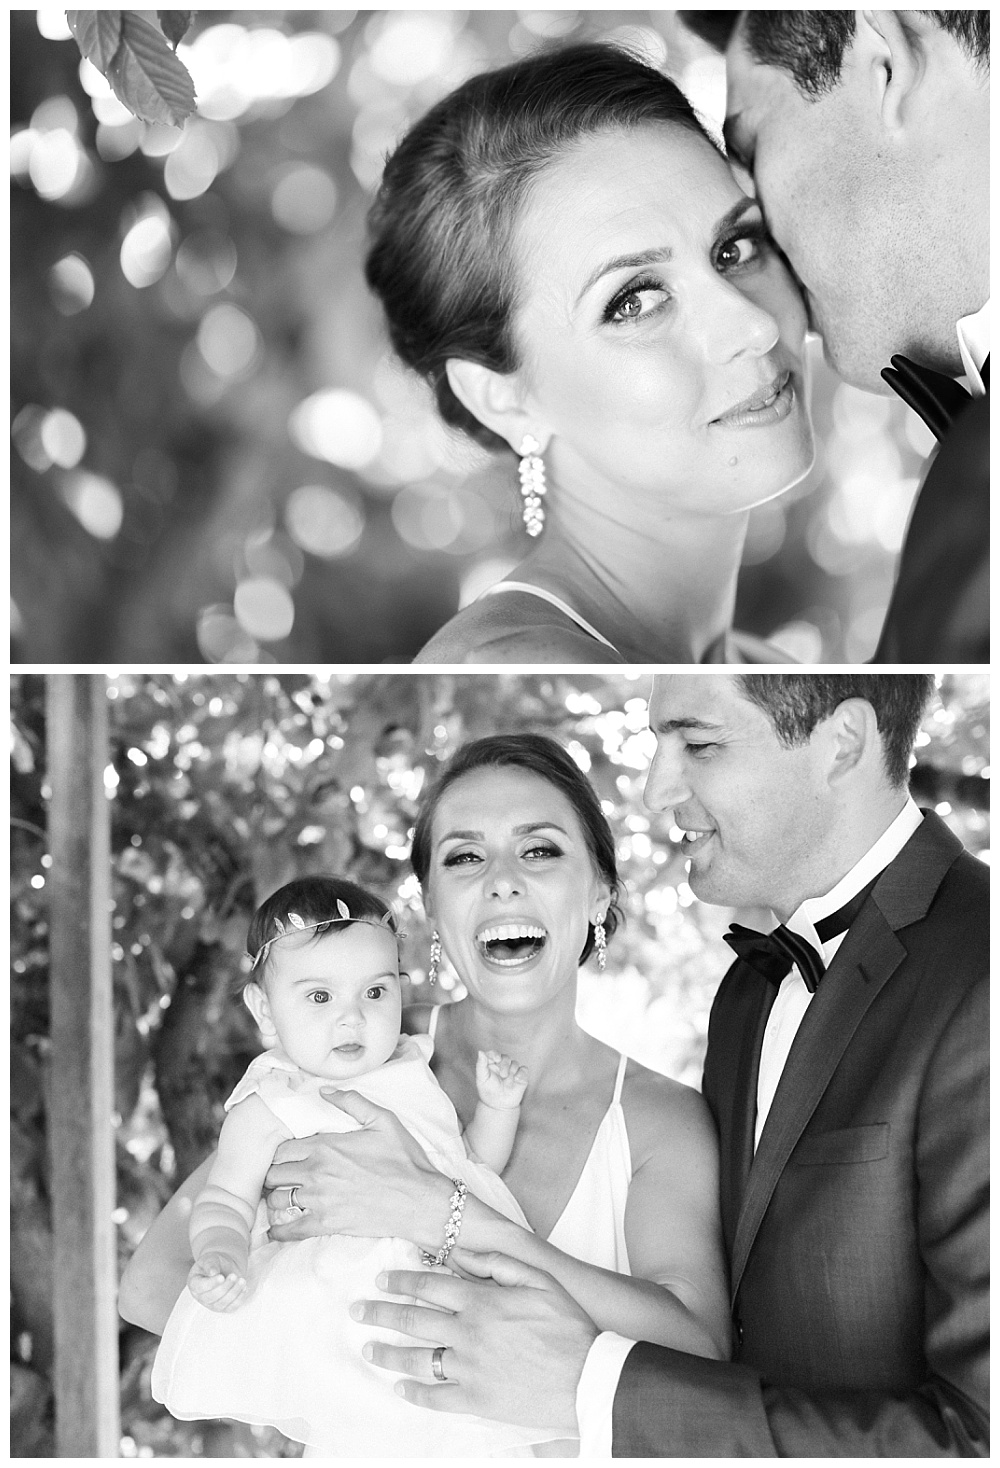 family bridal photos at red ridge farm, mom laughing with infant daughter in burberry dress